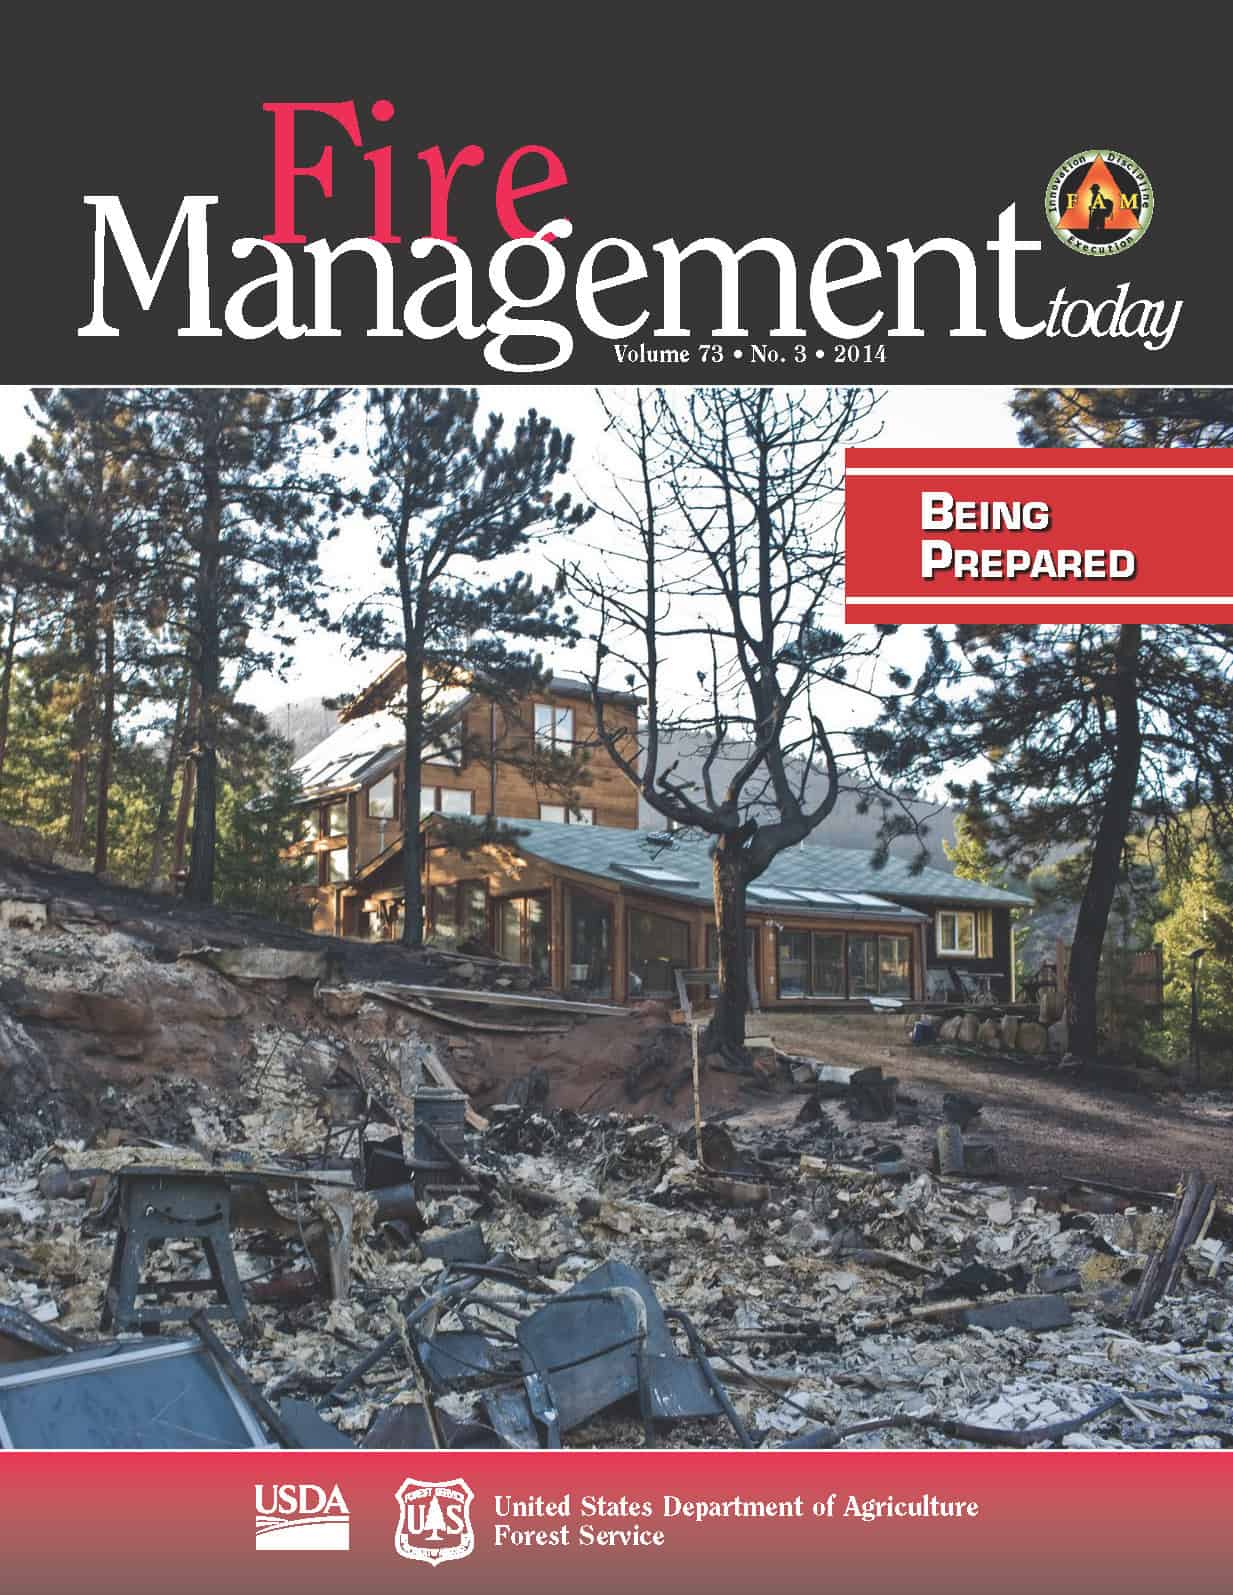 Fire Management Today publication